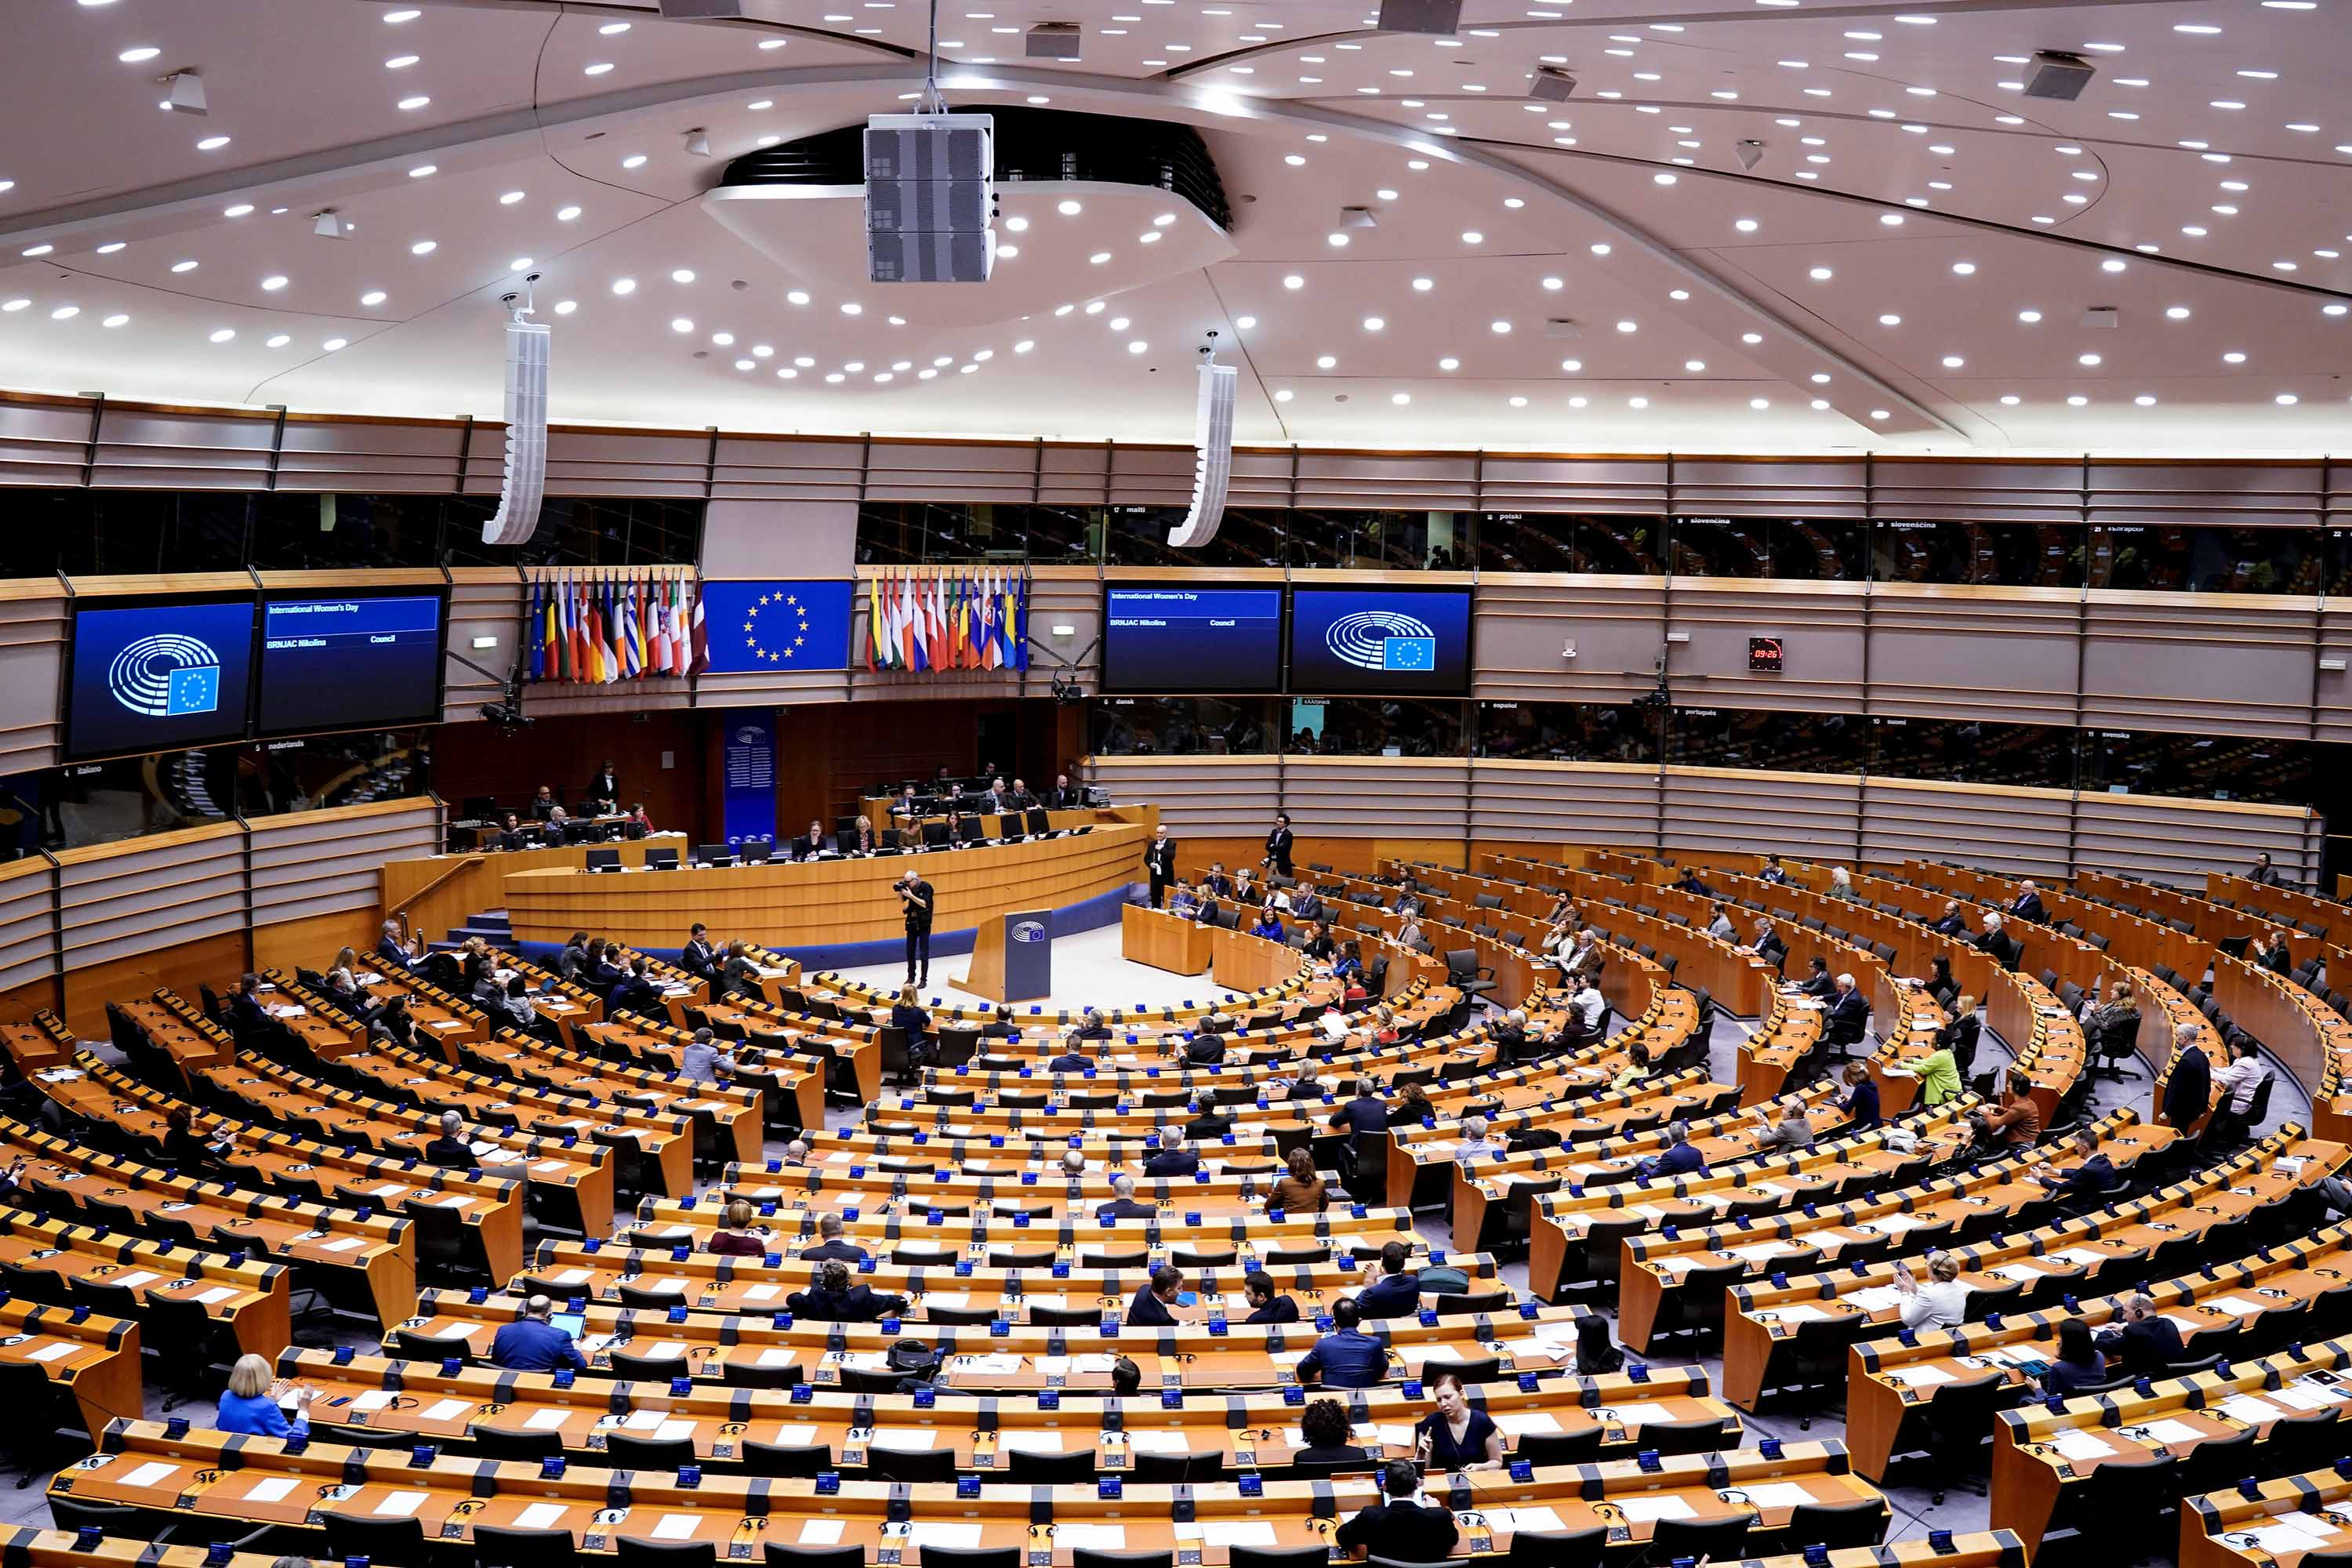 Members of the EU Parliament arrive at the beginning of a plenary session in Brussels on Tuesday, which has been reduced to a single day due to the coronavirus outbreak.